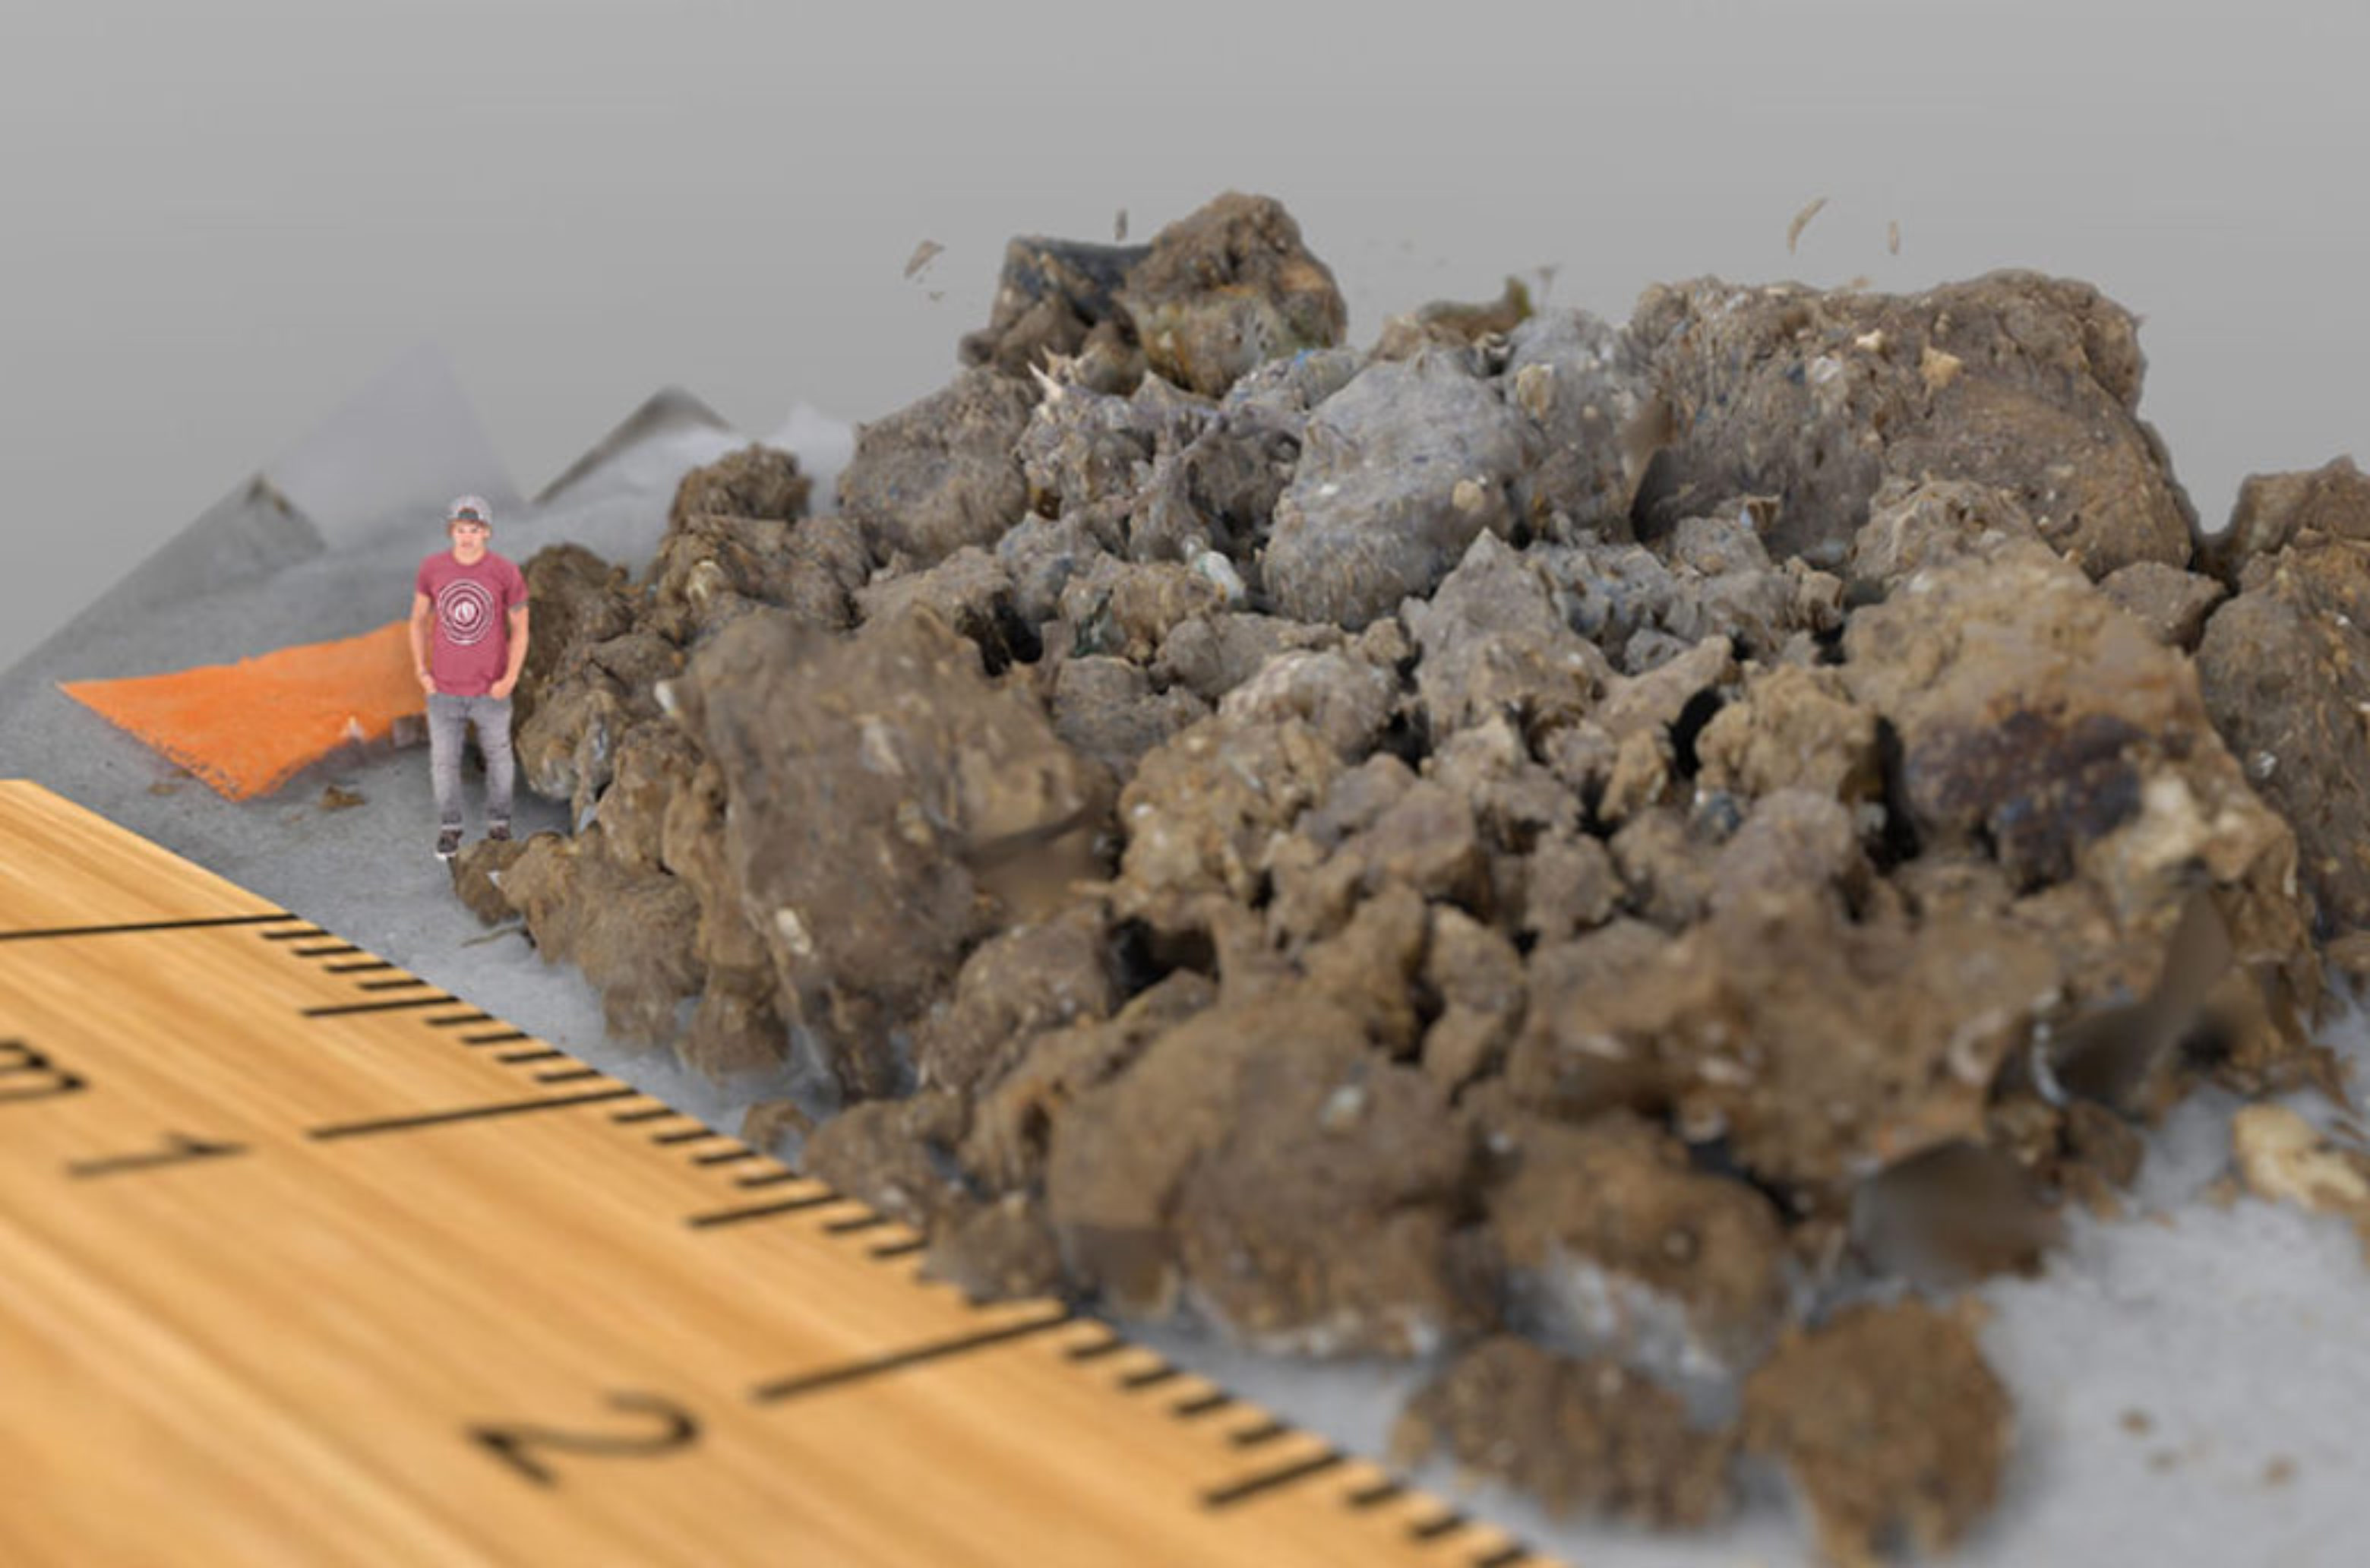 Digitally shrunk to the size of a soil animal: To immerse themselves in the pore space, the users assume the perspective of small soil creatures.